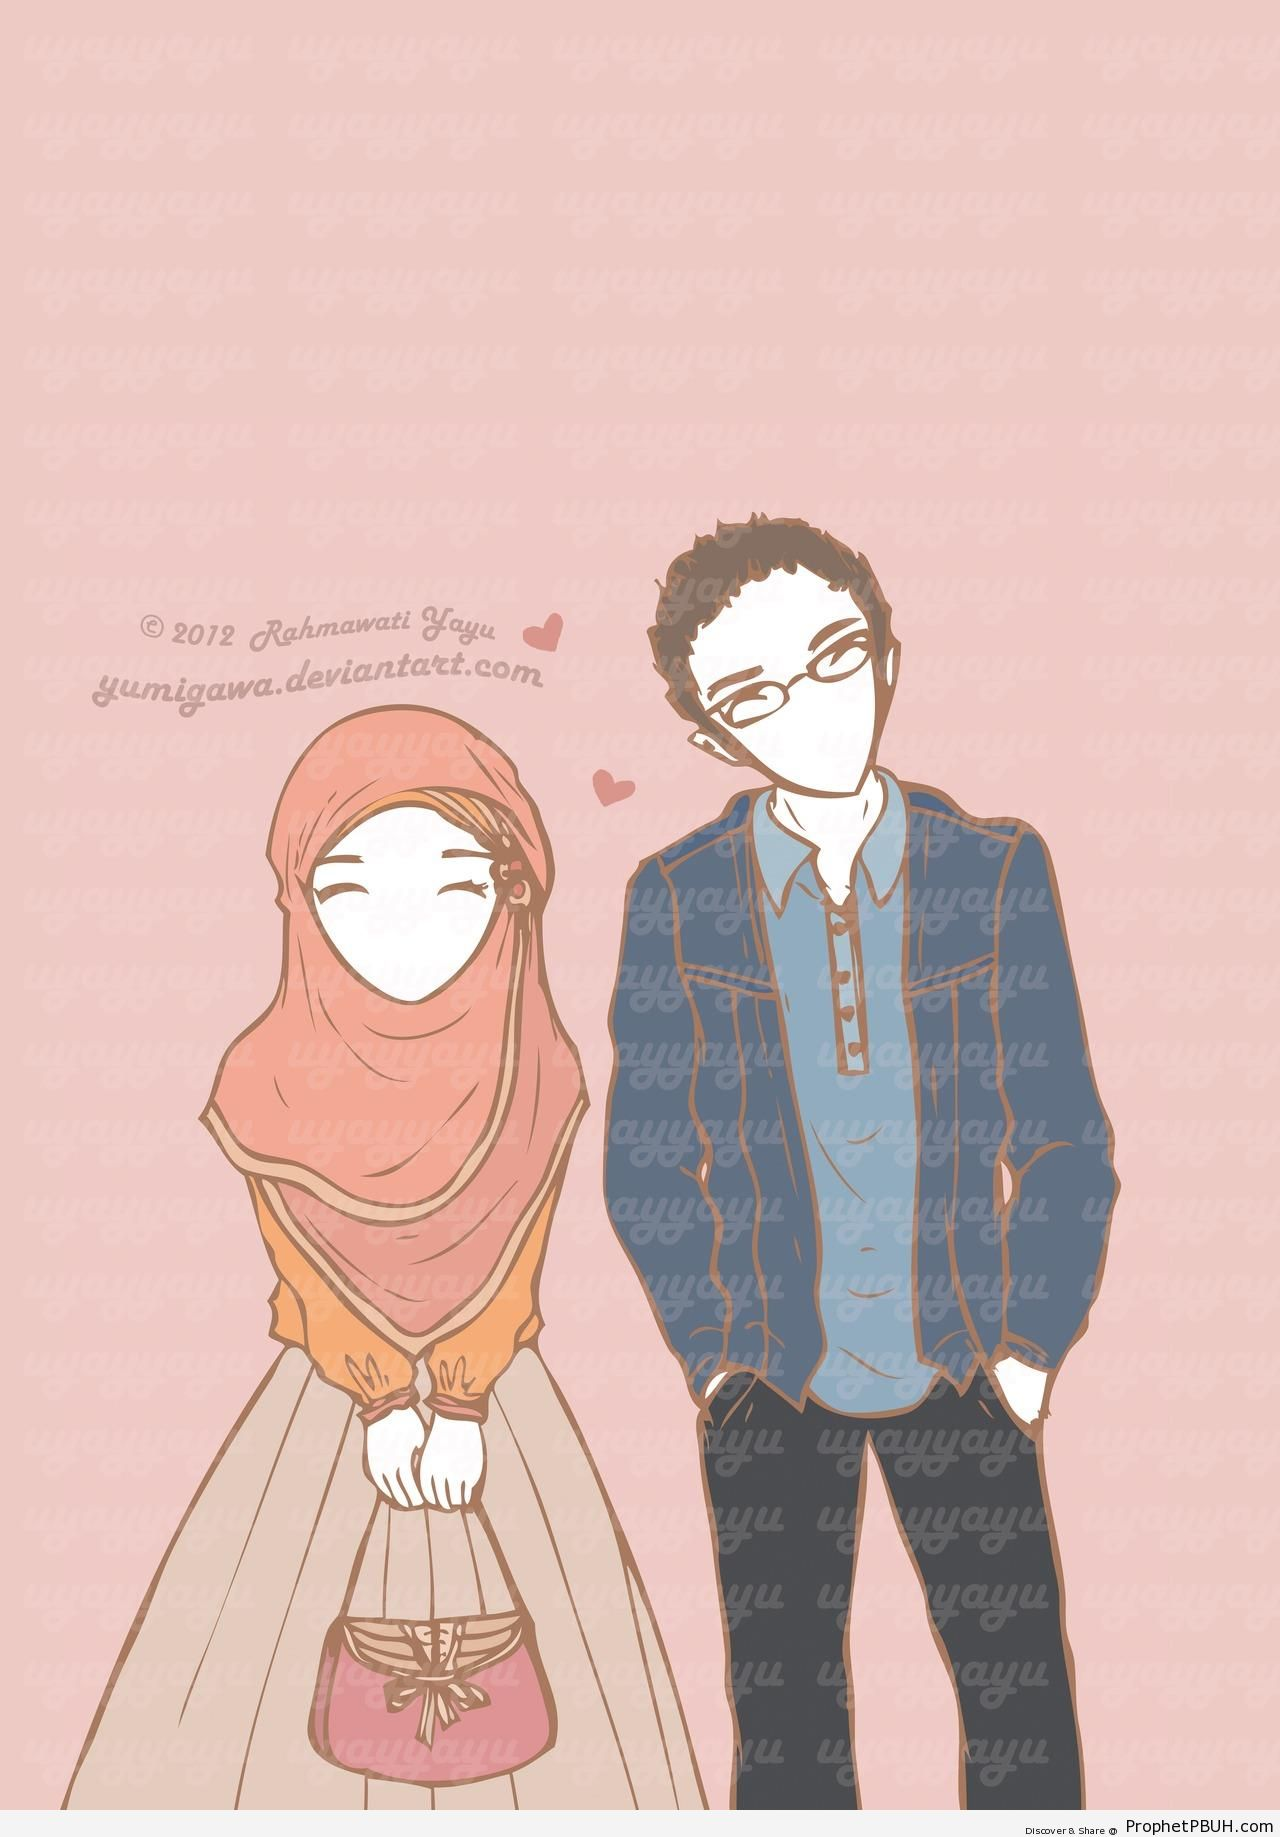 Illustration of a Muslim Couple - Drawings of Female Muslims (Muslimahs & Hijab Drawings)